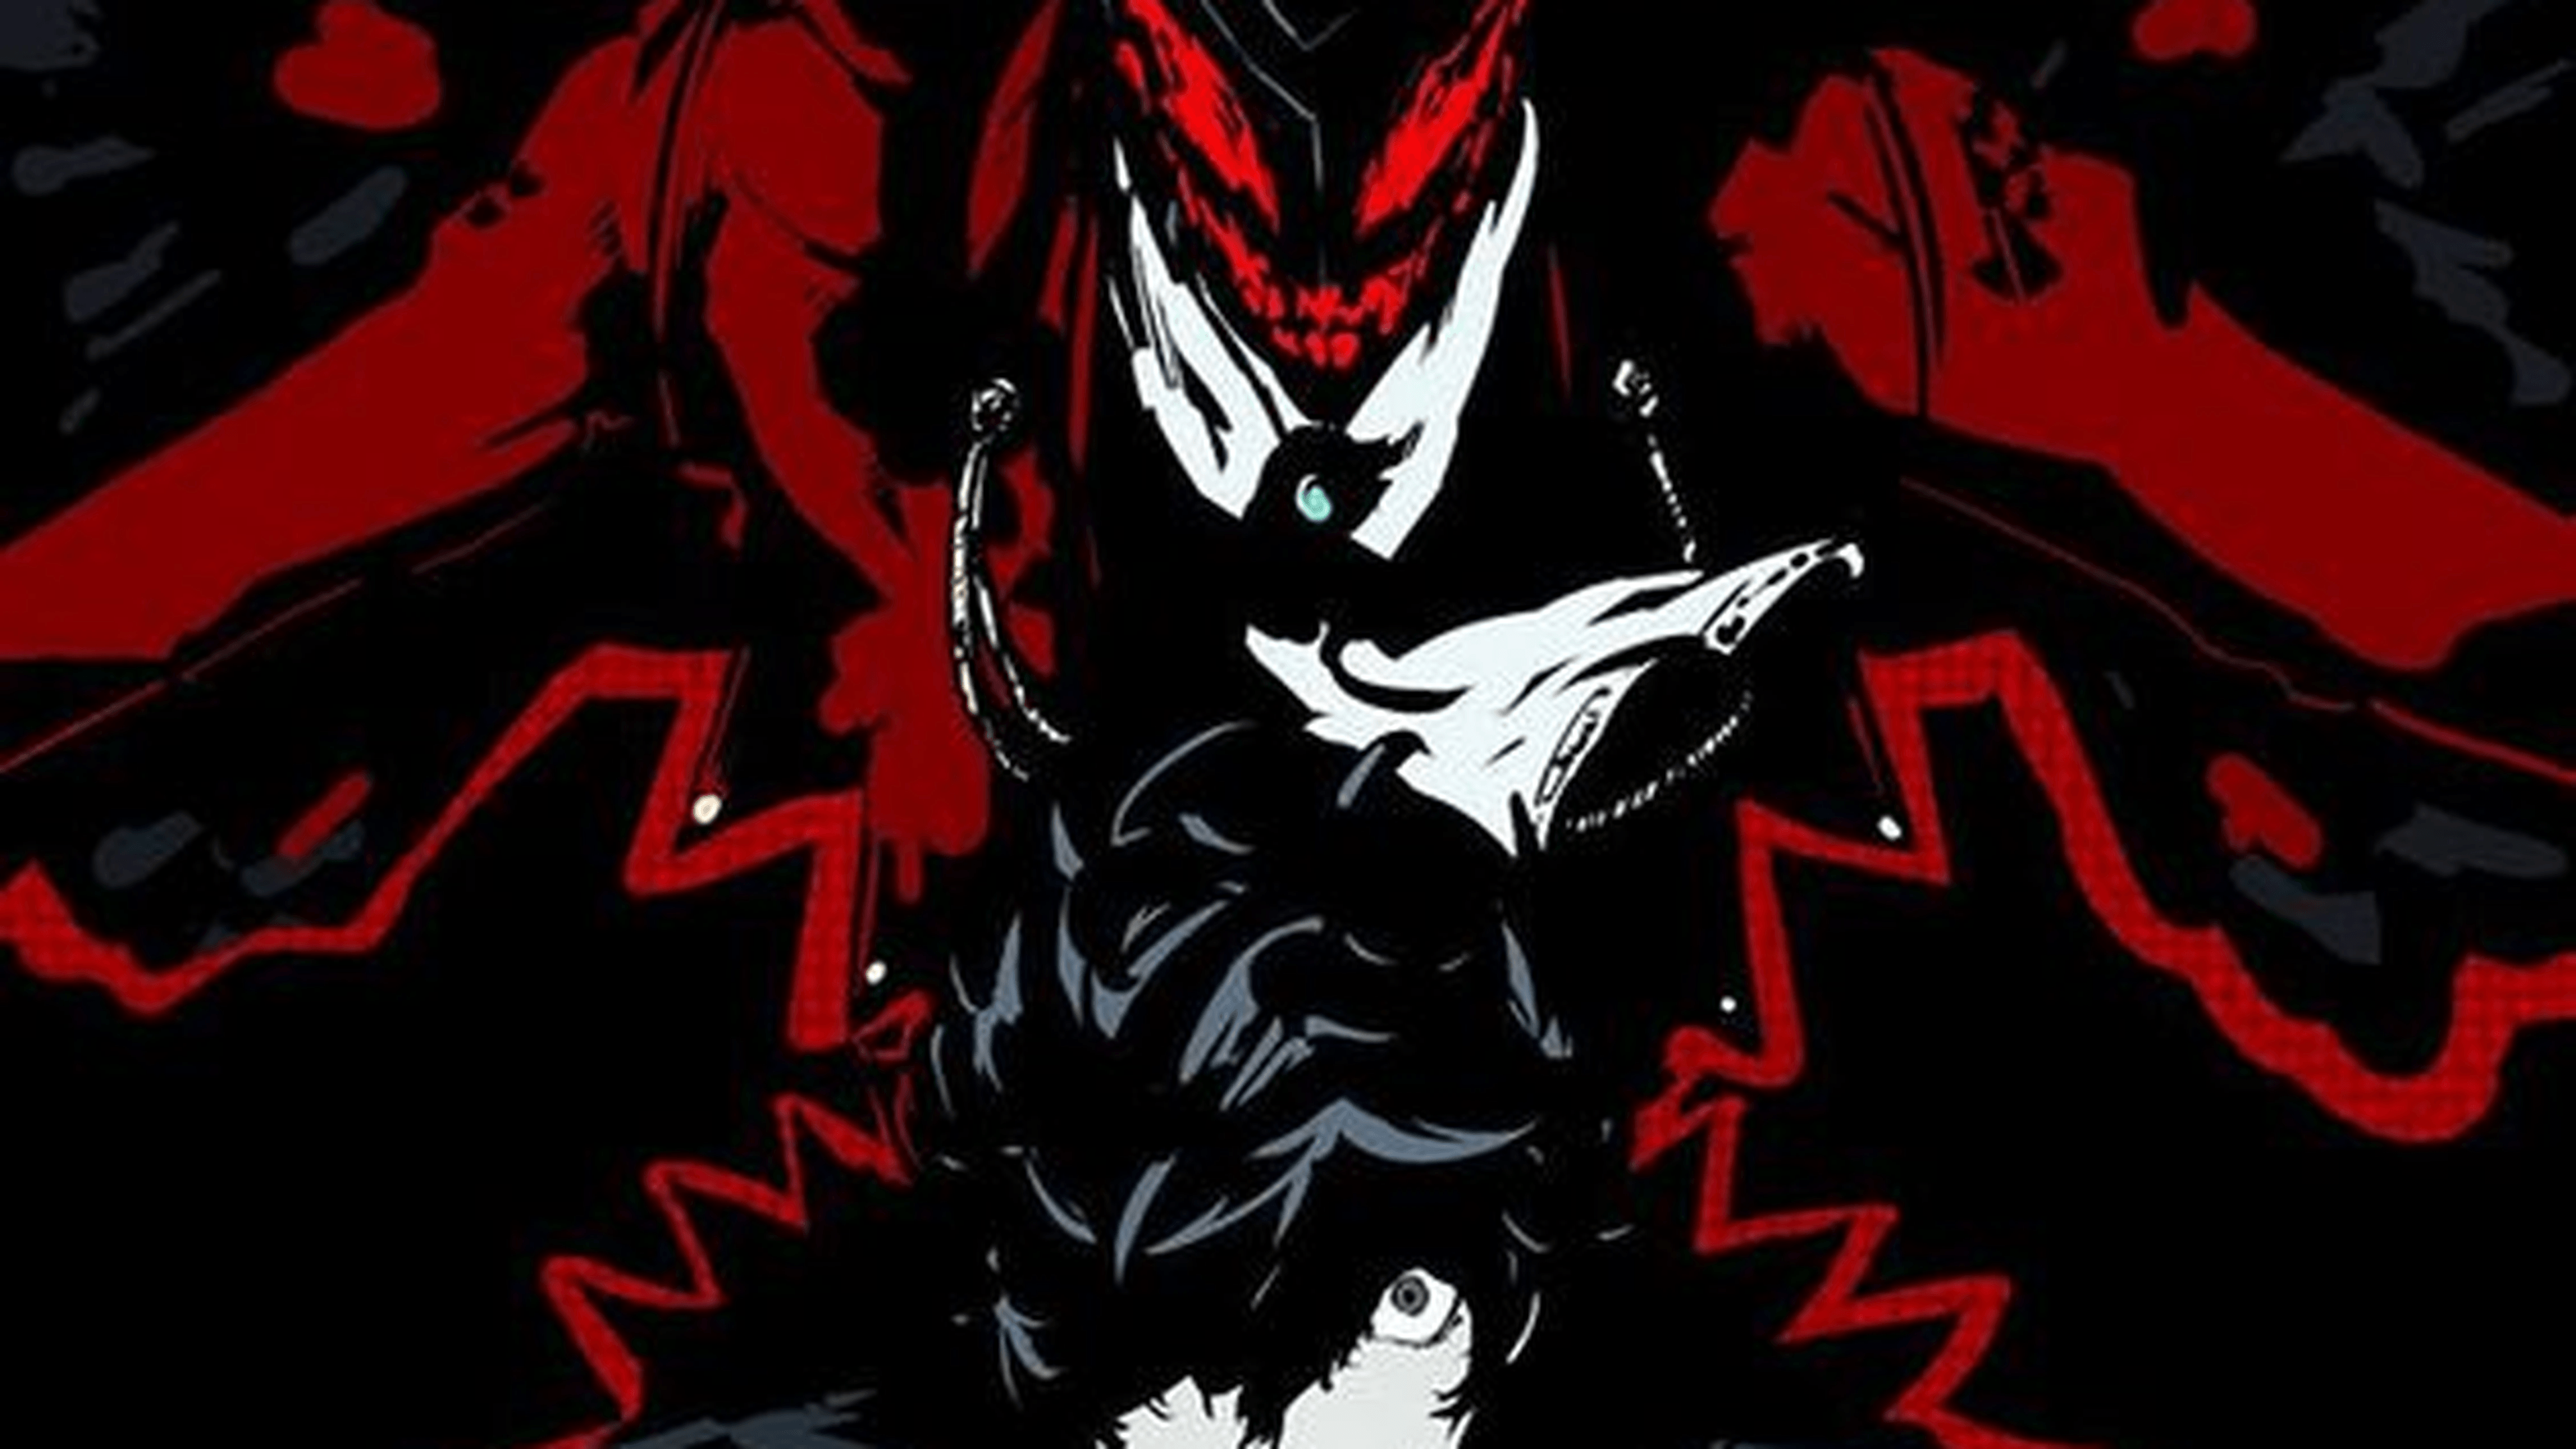 Persona 5 4k Wallpapers Top Free Persona 5 4k Backgrounds 3112599 Hd Wallpaper Backgrounds Download